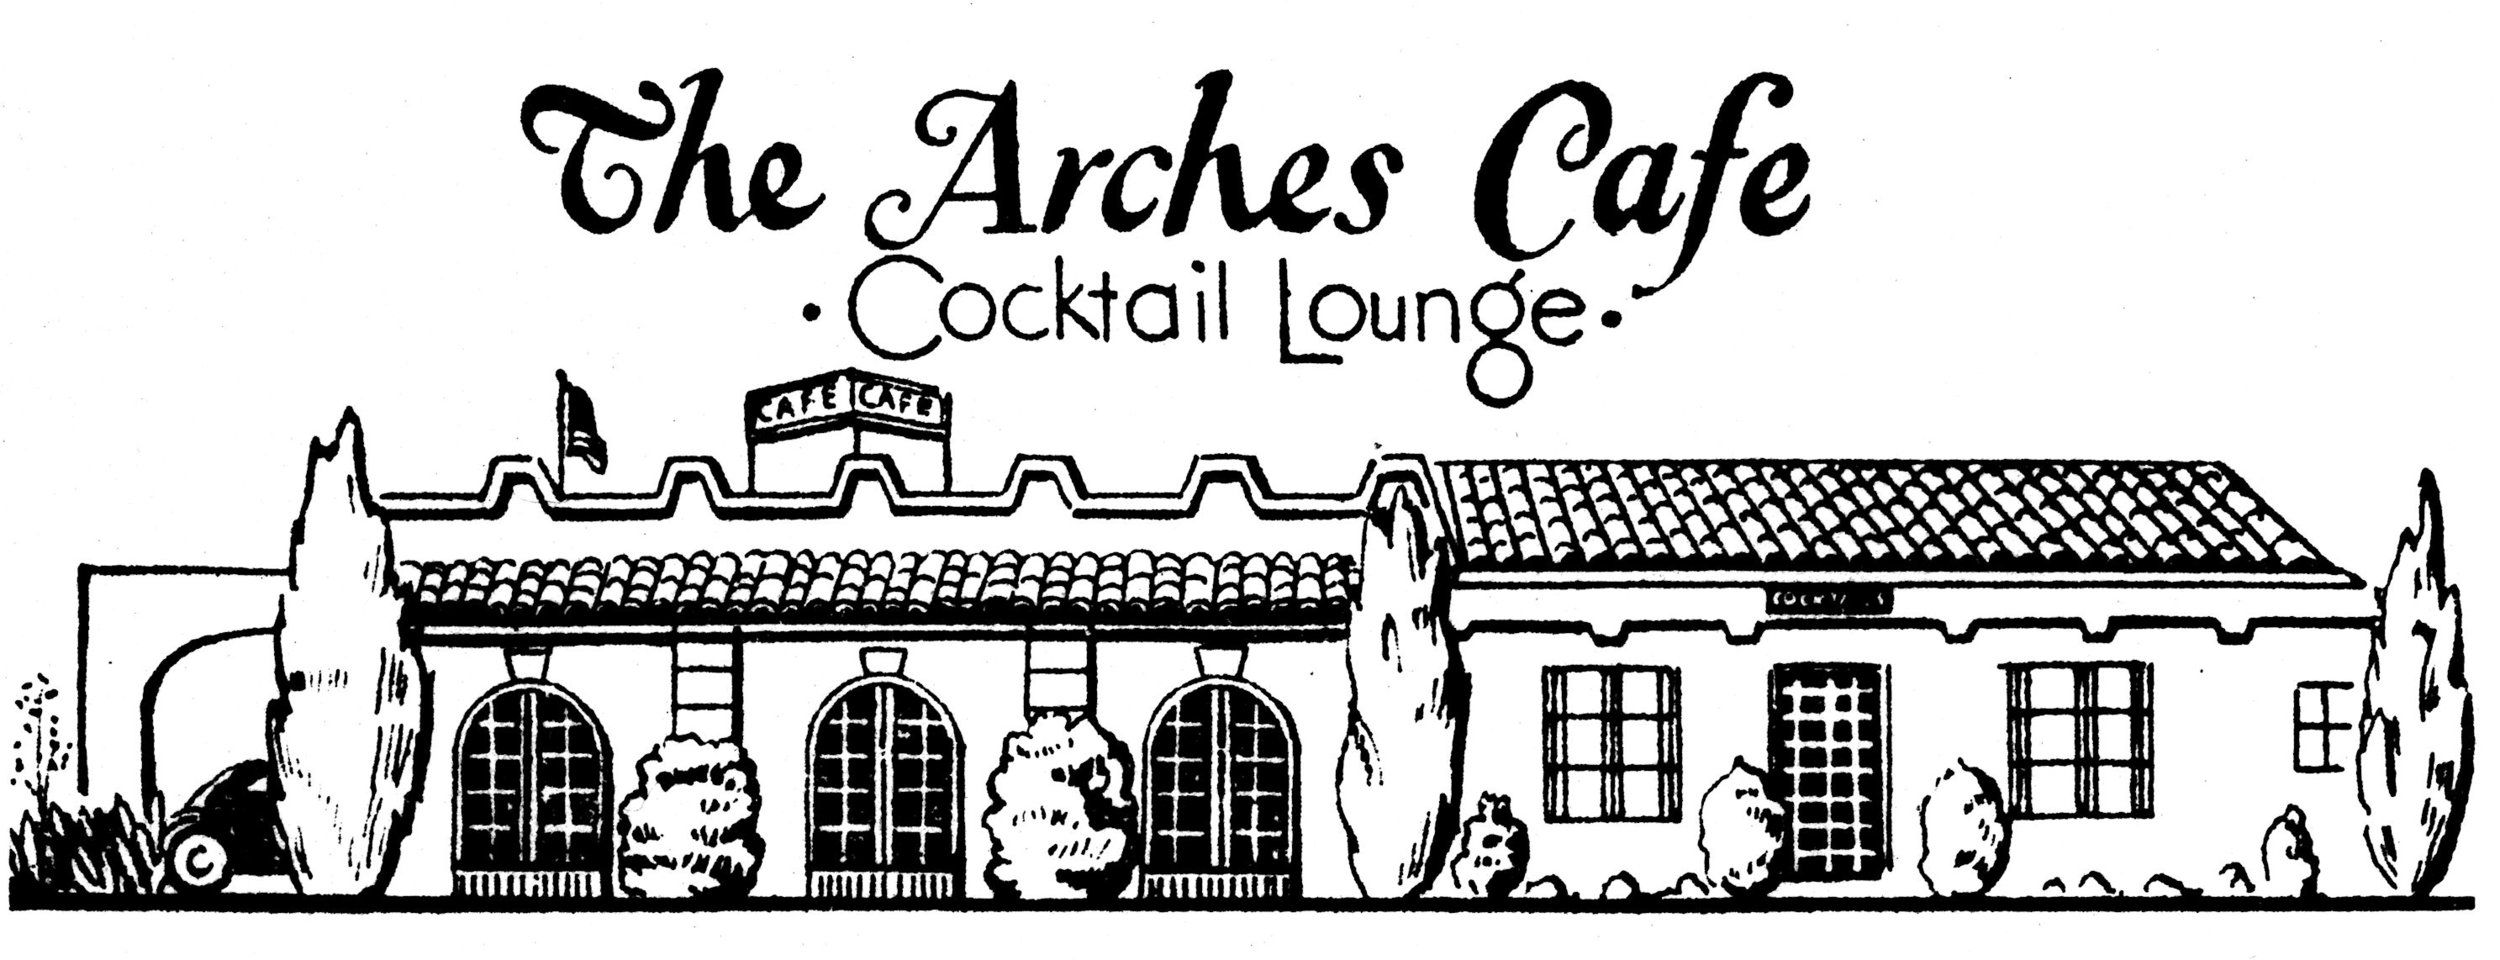 The Arches Cafe, 1952.